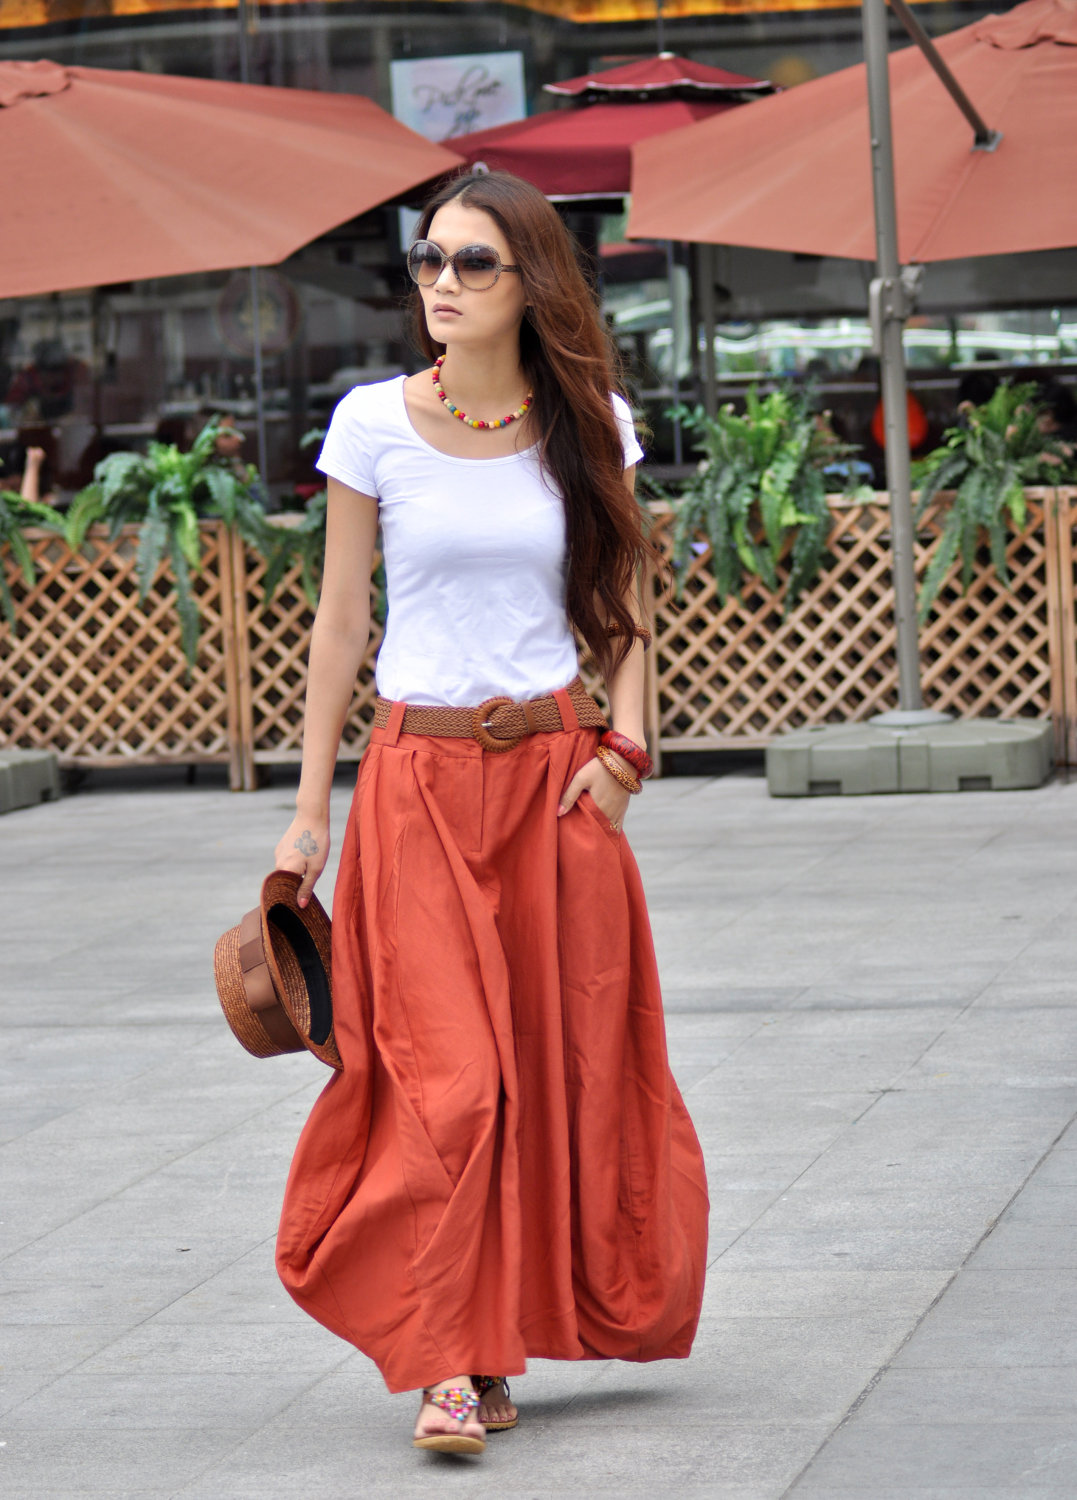 You searched for: long maxi skirt! Etsy is the home to thousands of handmade, vintage, and one-of-a-kind products and gifts related to your search. No matter what you're looking for or where you are in the world, our global marketplace of sellers can help you find unique and affordable options. Let's get started!